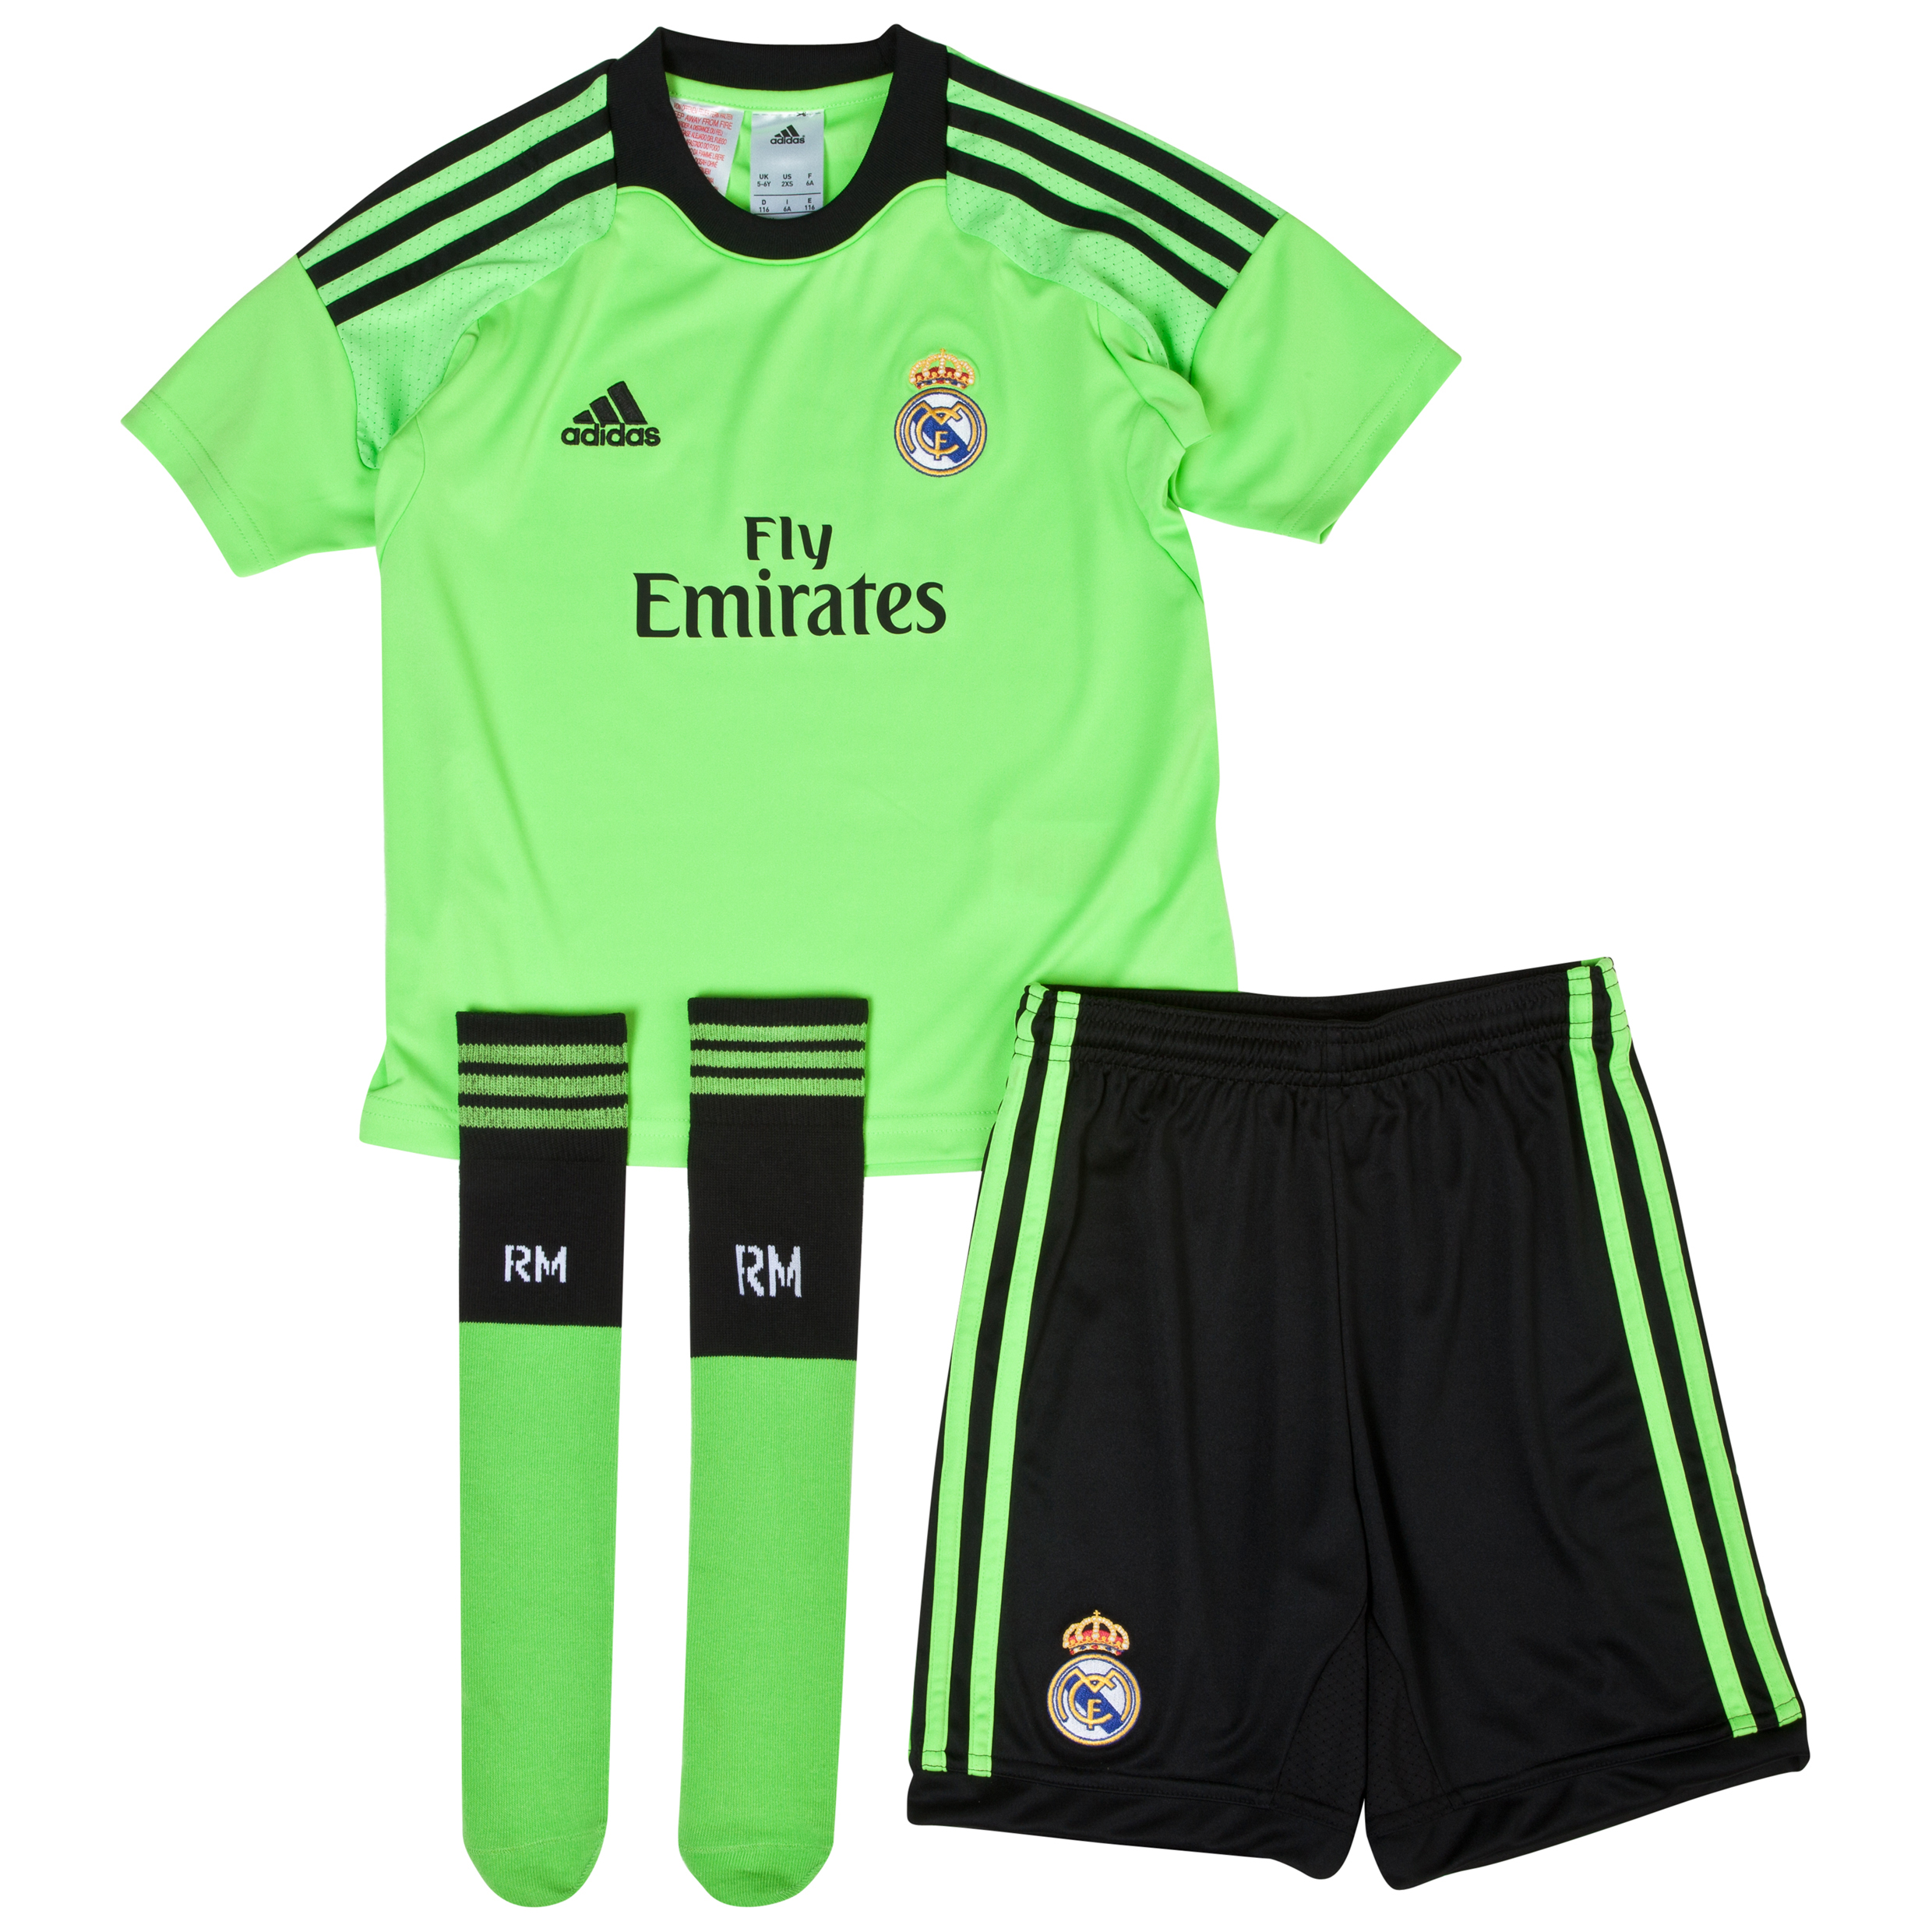 Real Madrid Away Goalkeeper Mini Kit 2013/14